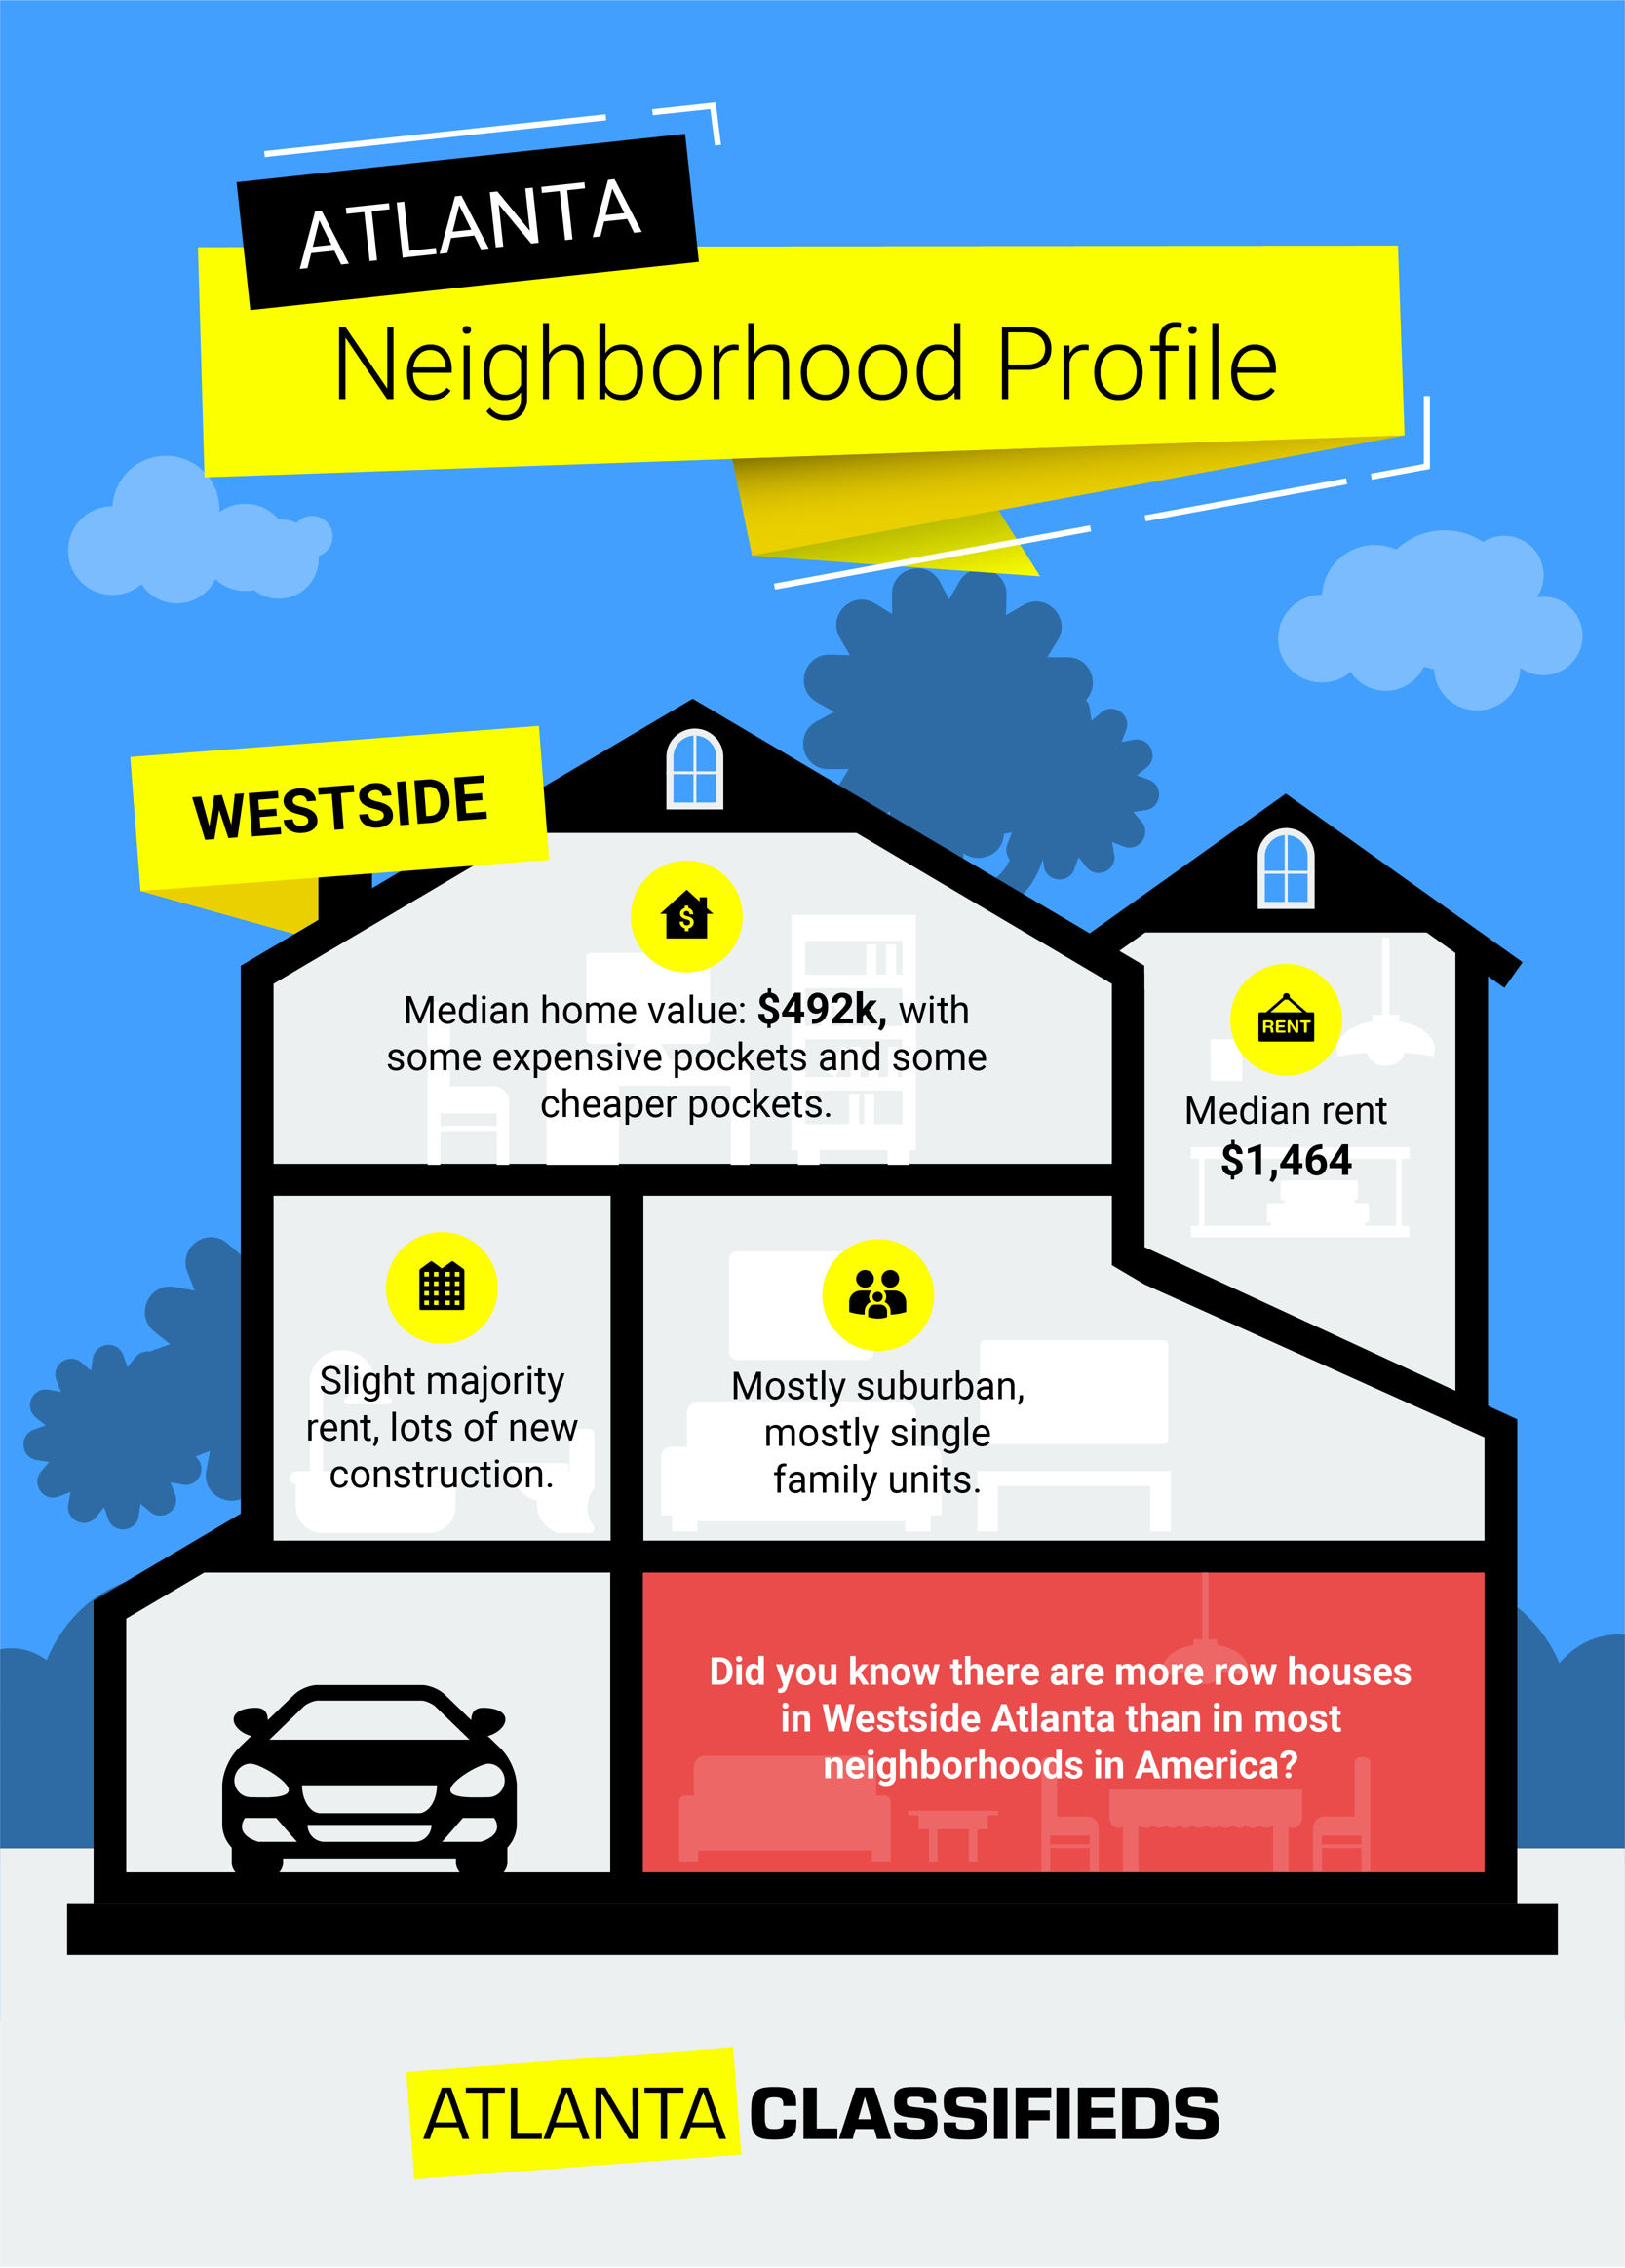 Tips for renting an apartment or buying a home in West Atlanta, GA.